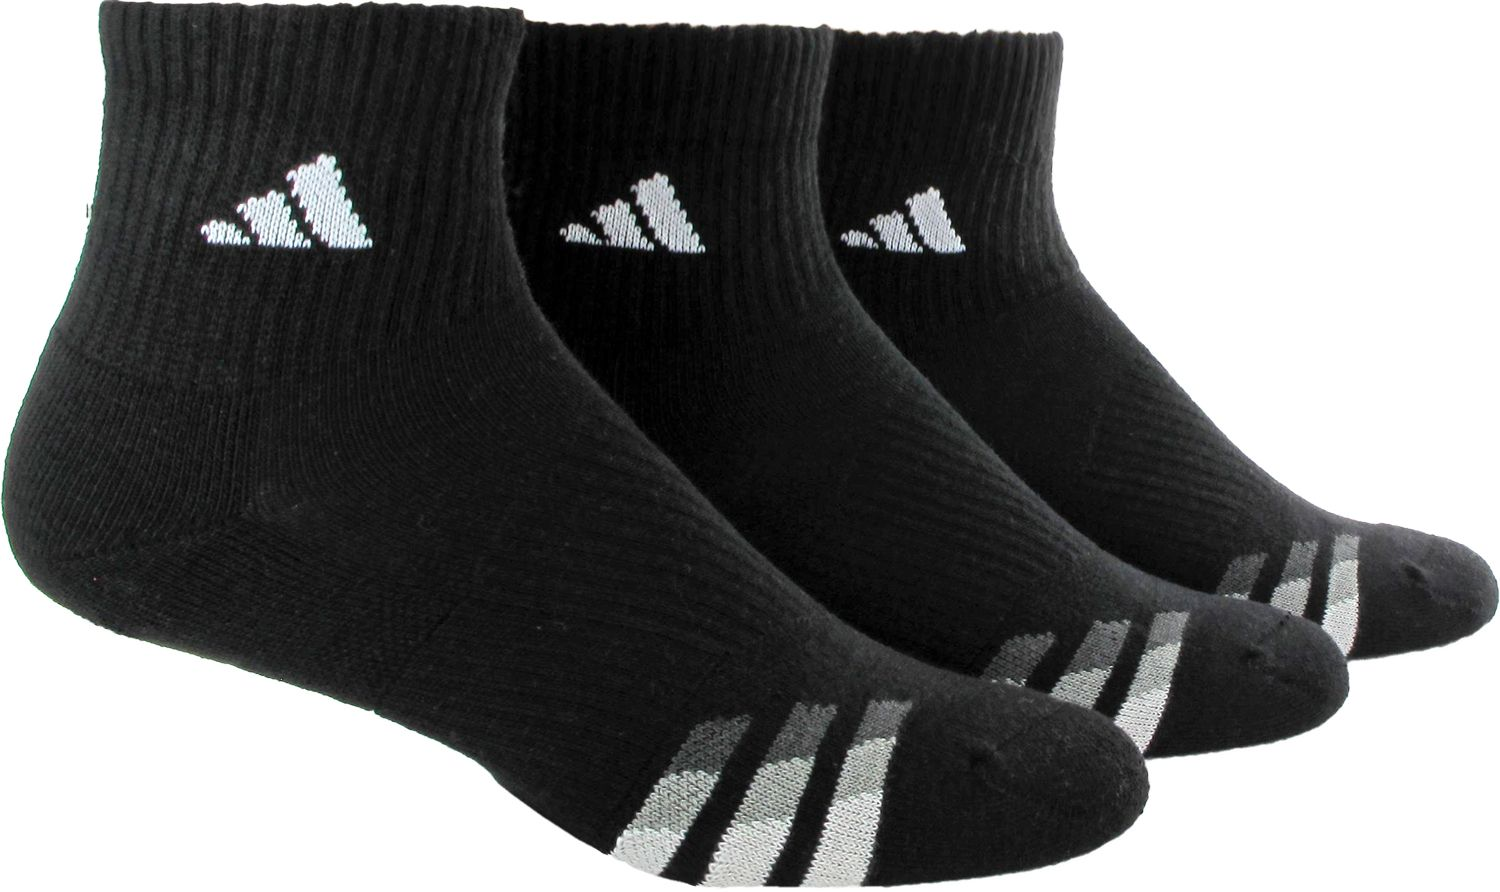 adidas Mens Cushioned Quarter Athletic Socks 3 Pack DICKS Sporting Goods